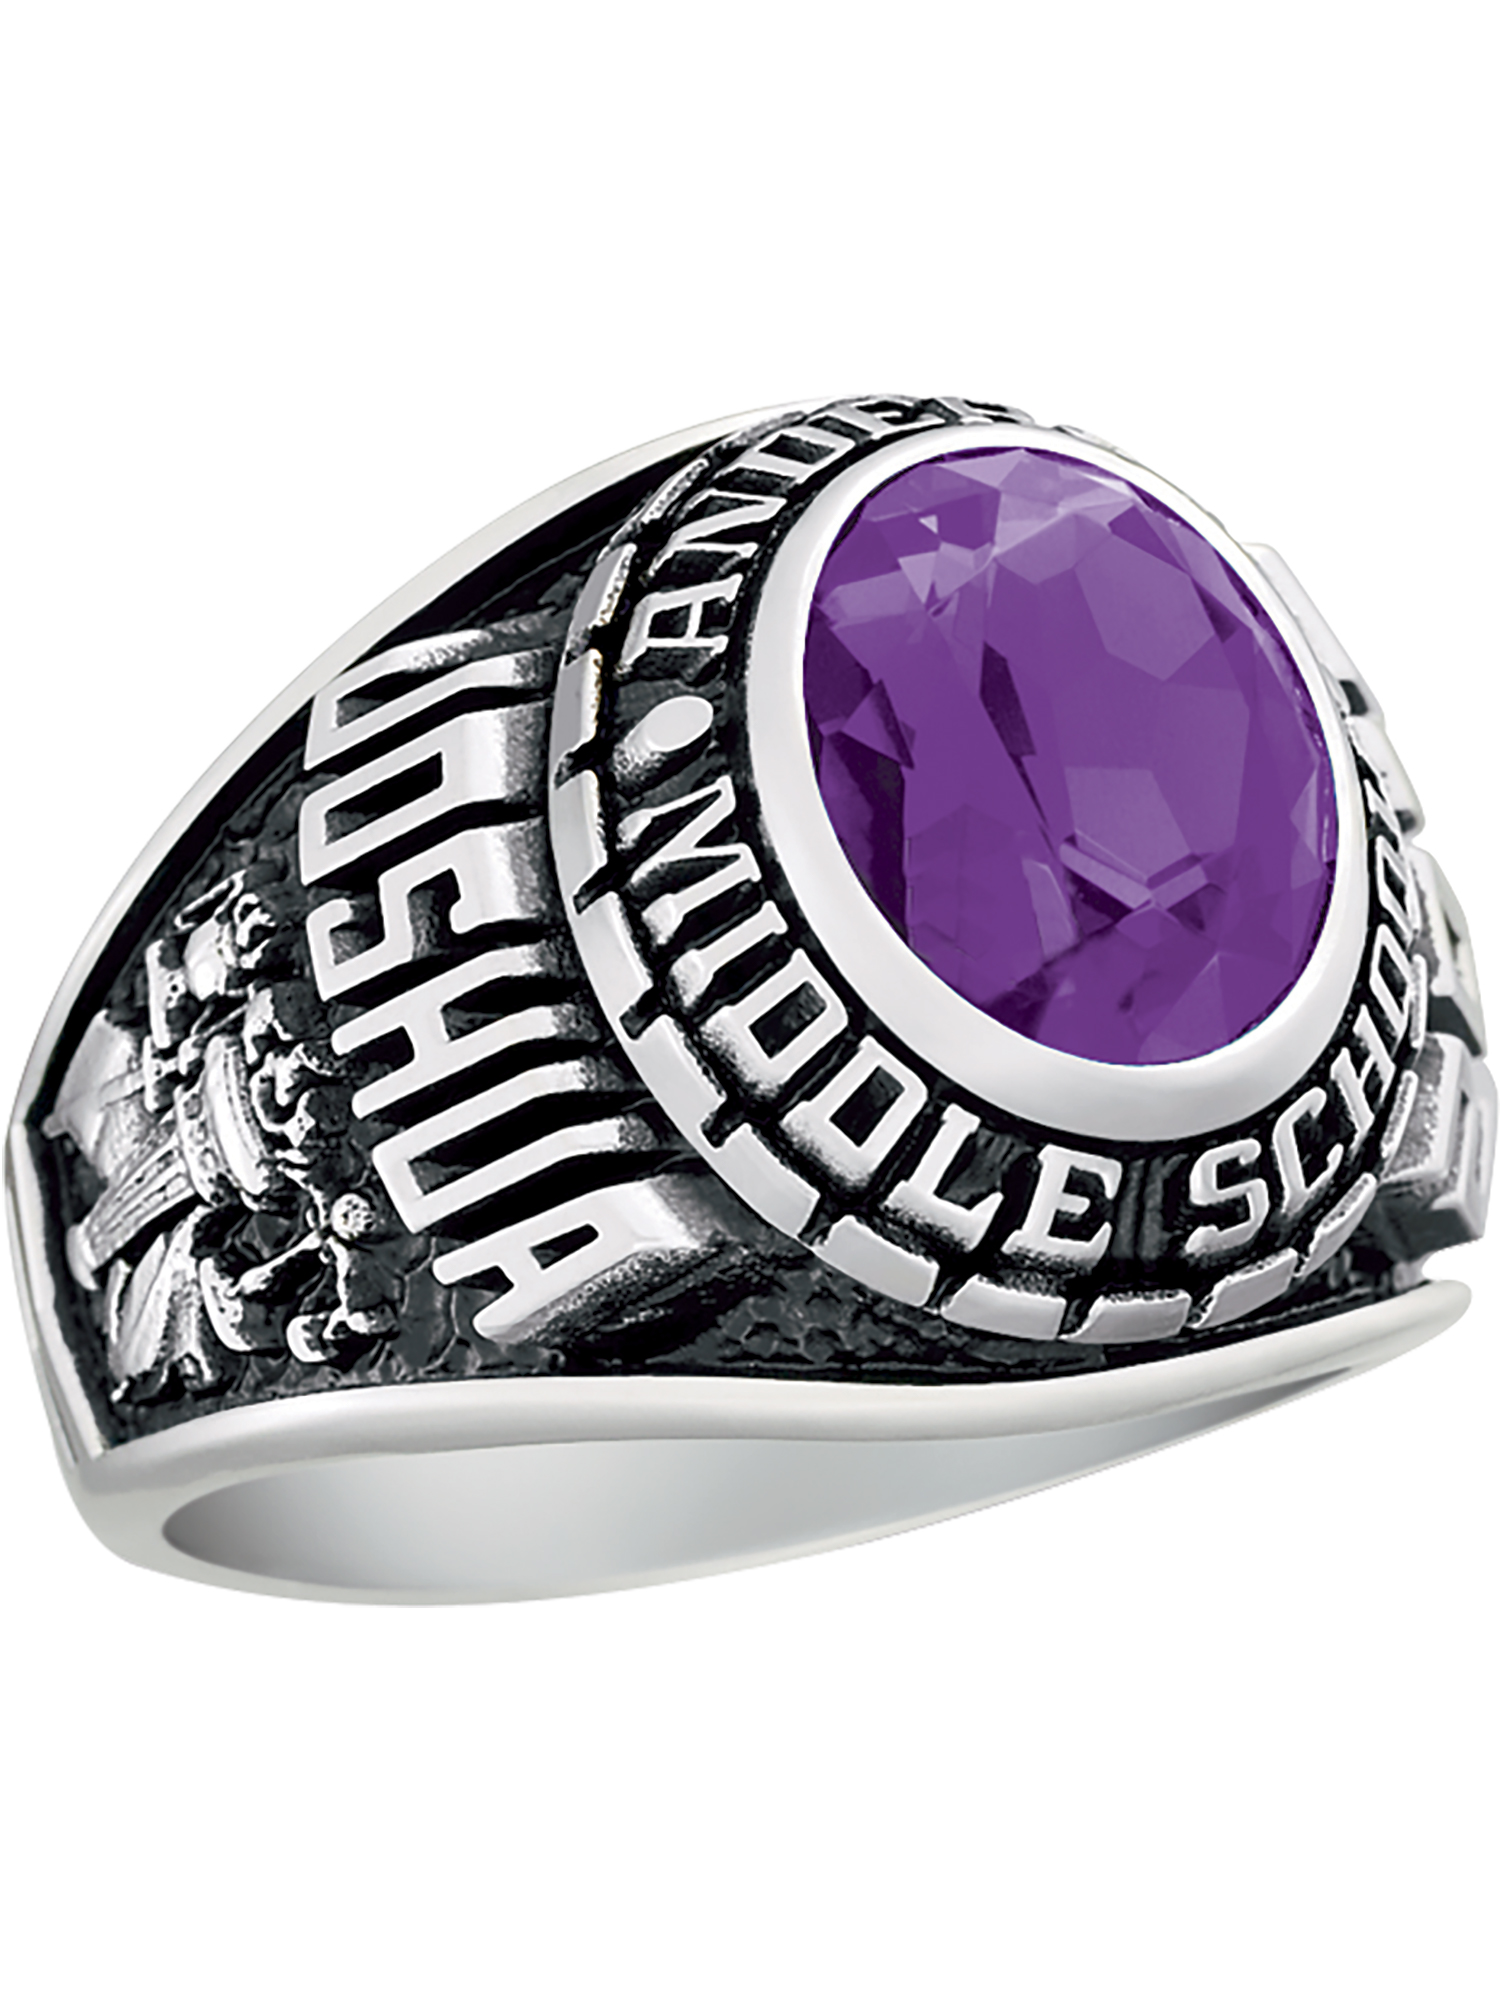 Keepsake Personalized Men's Middle School or Junior High Ring available in Valadium